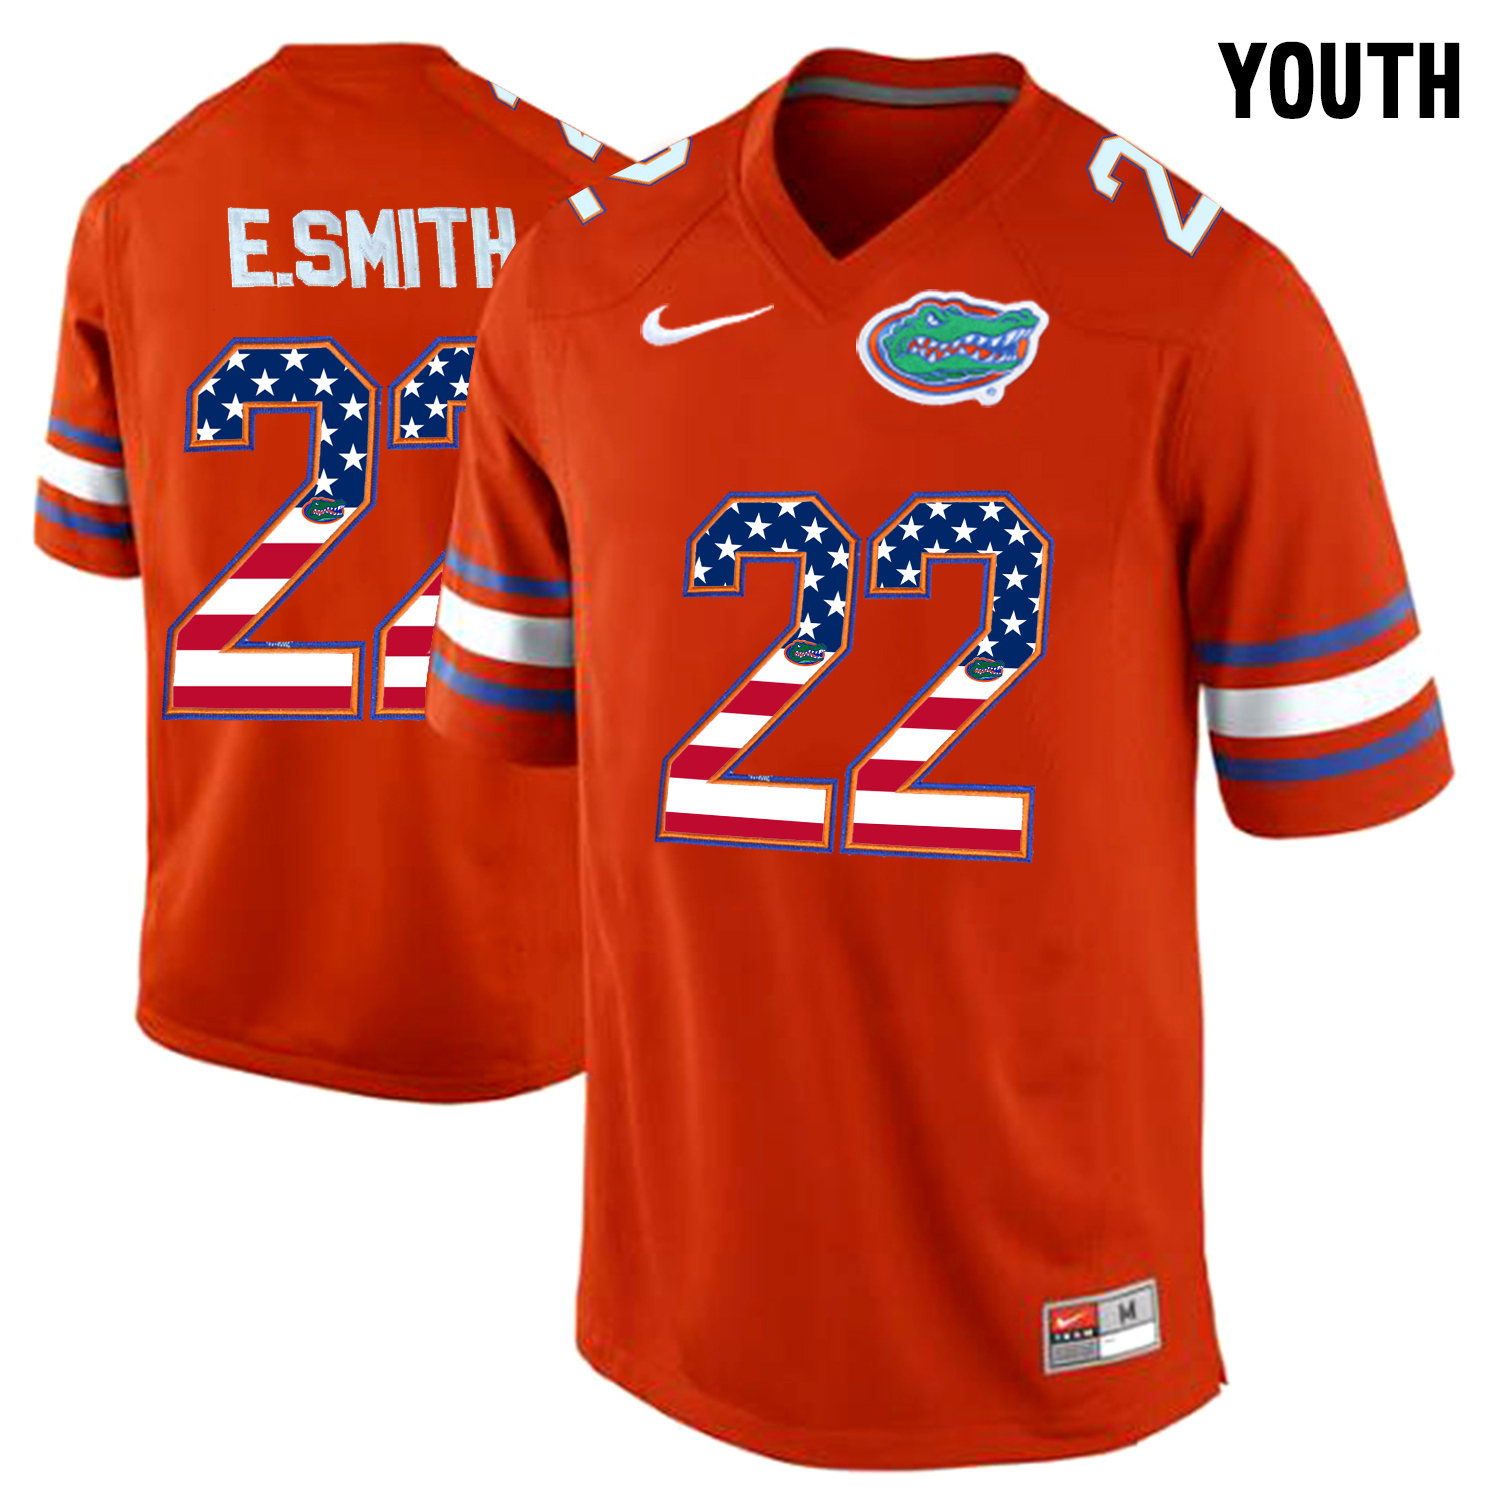 2016 US Flag Fashion Youth Florida Gators E.Smith 22 College Football Jersey Orange